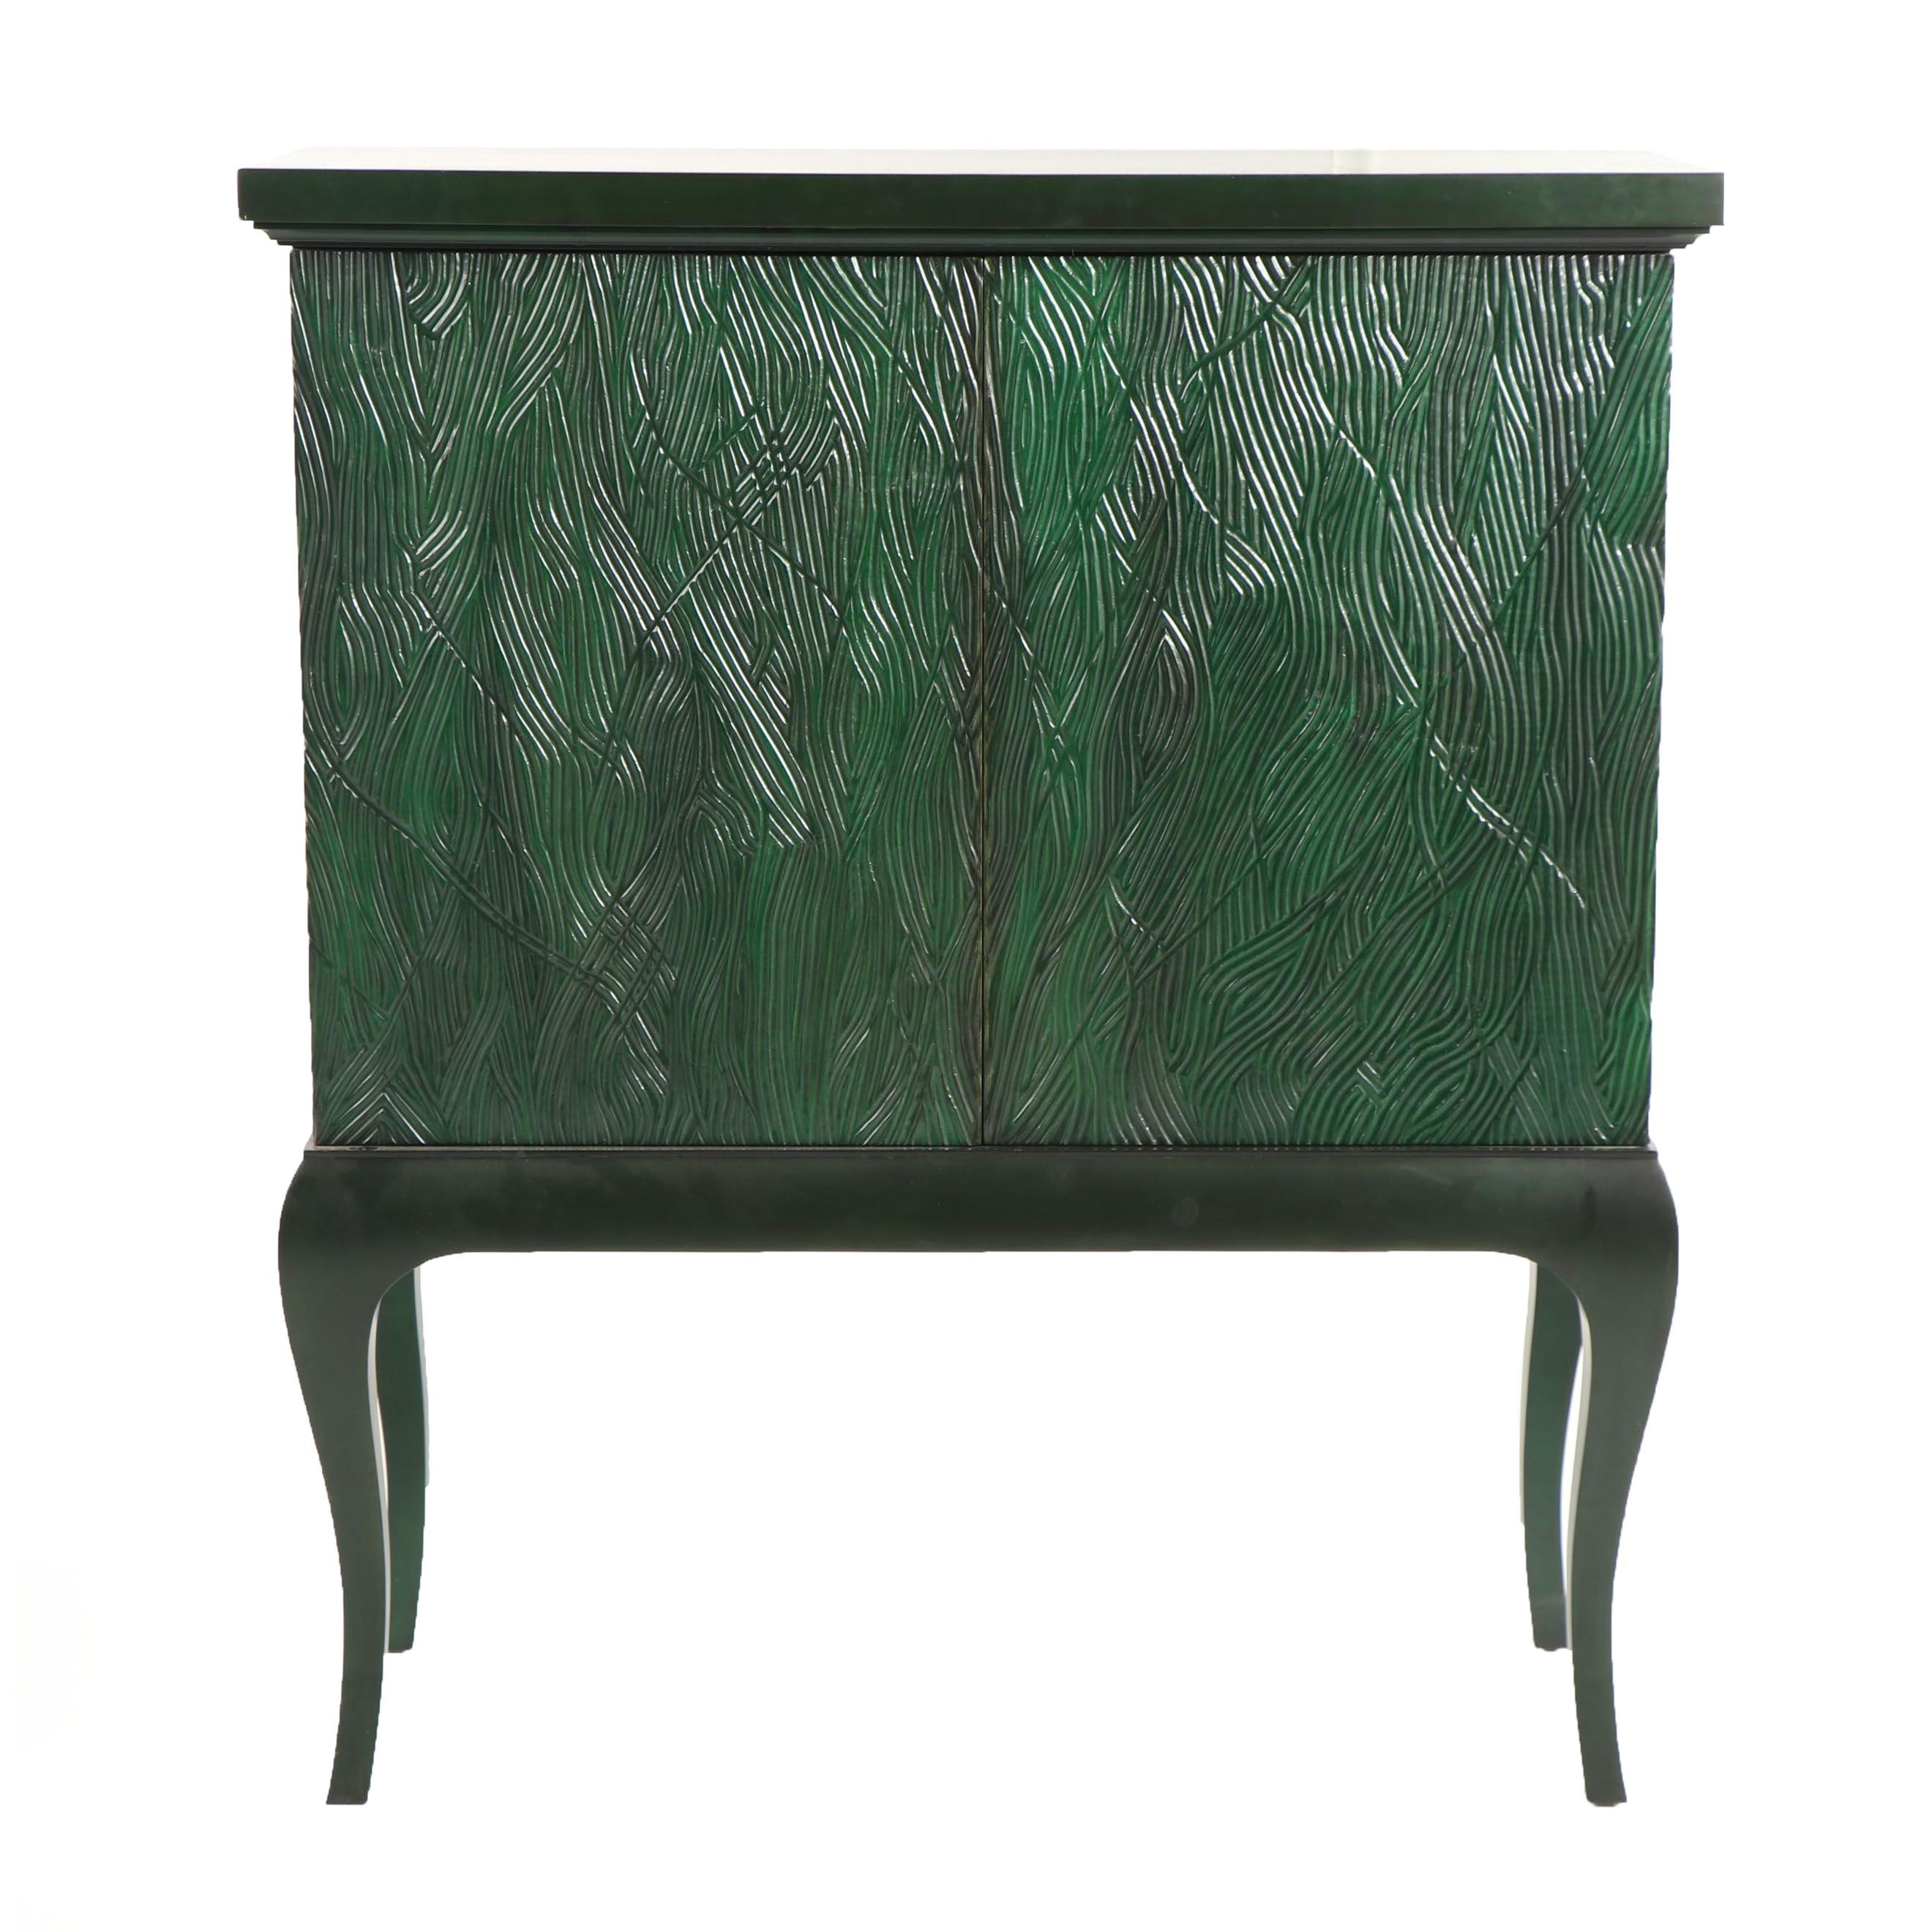 Contemporary Green Painted Carved Wood Cabinet